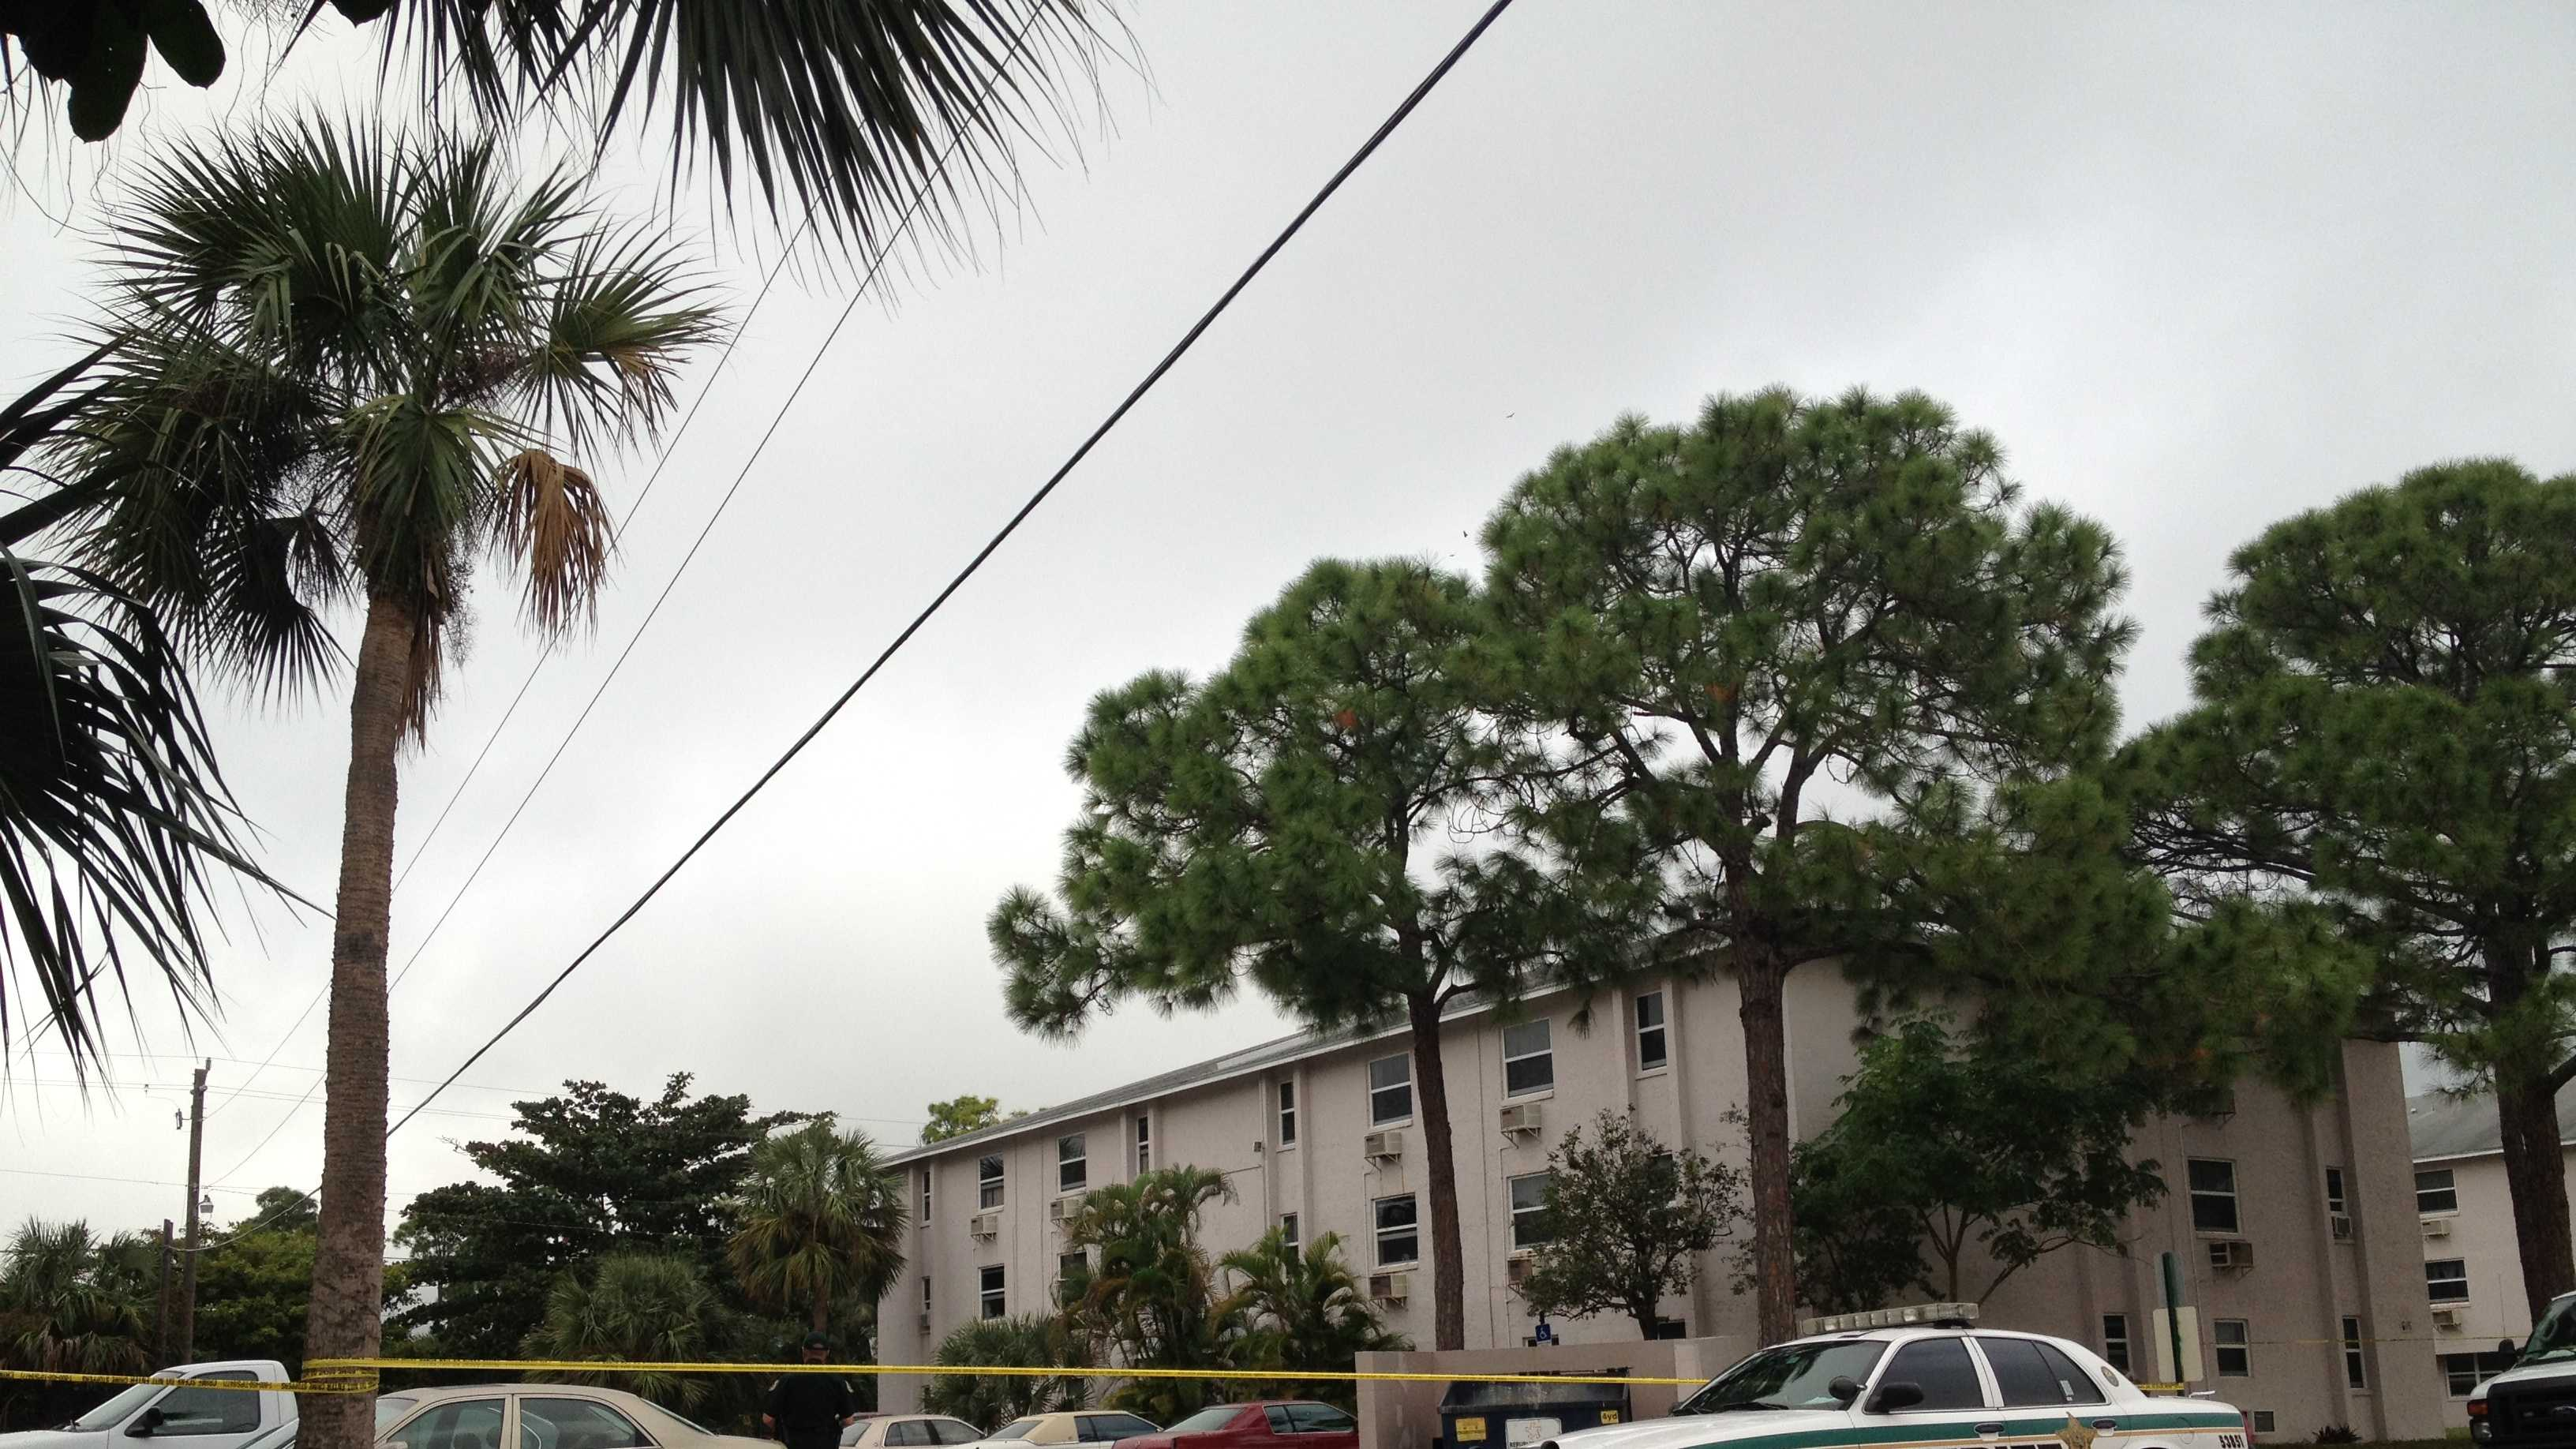 Two bodies were found inside a car at this apartment complex off Mango Drive.